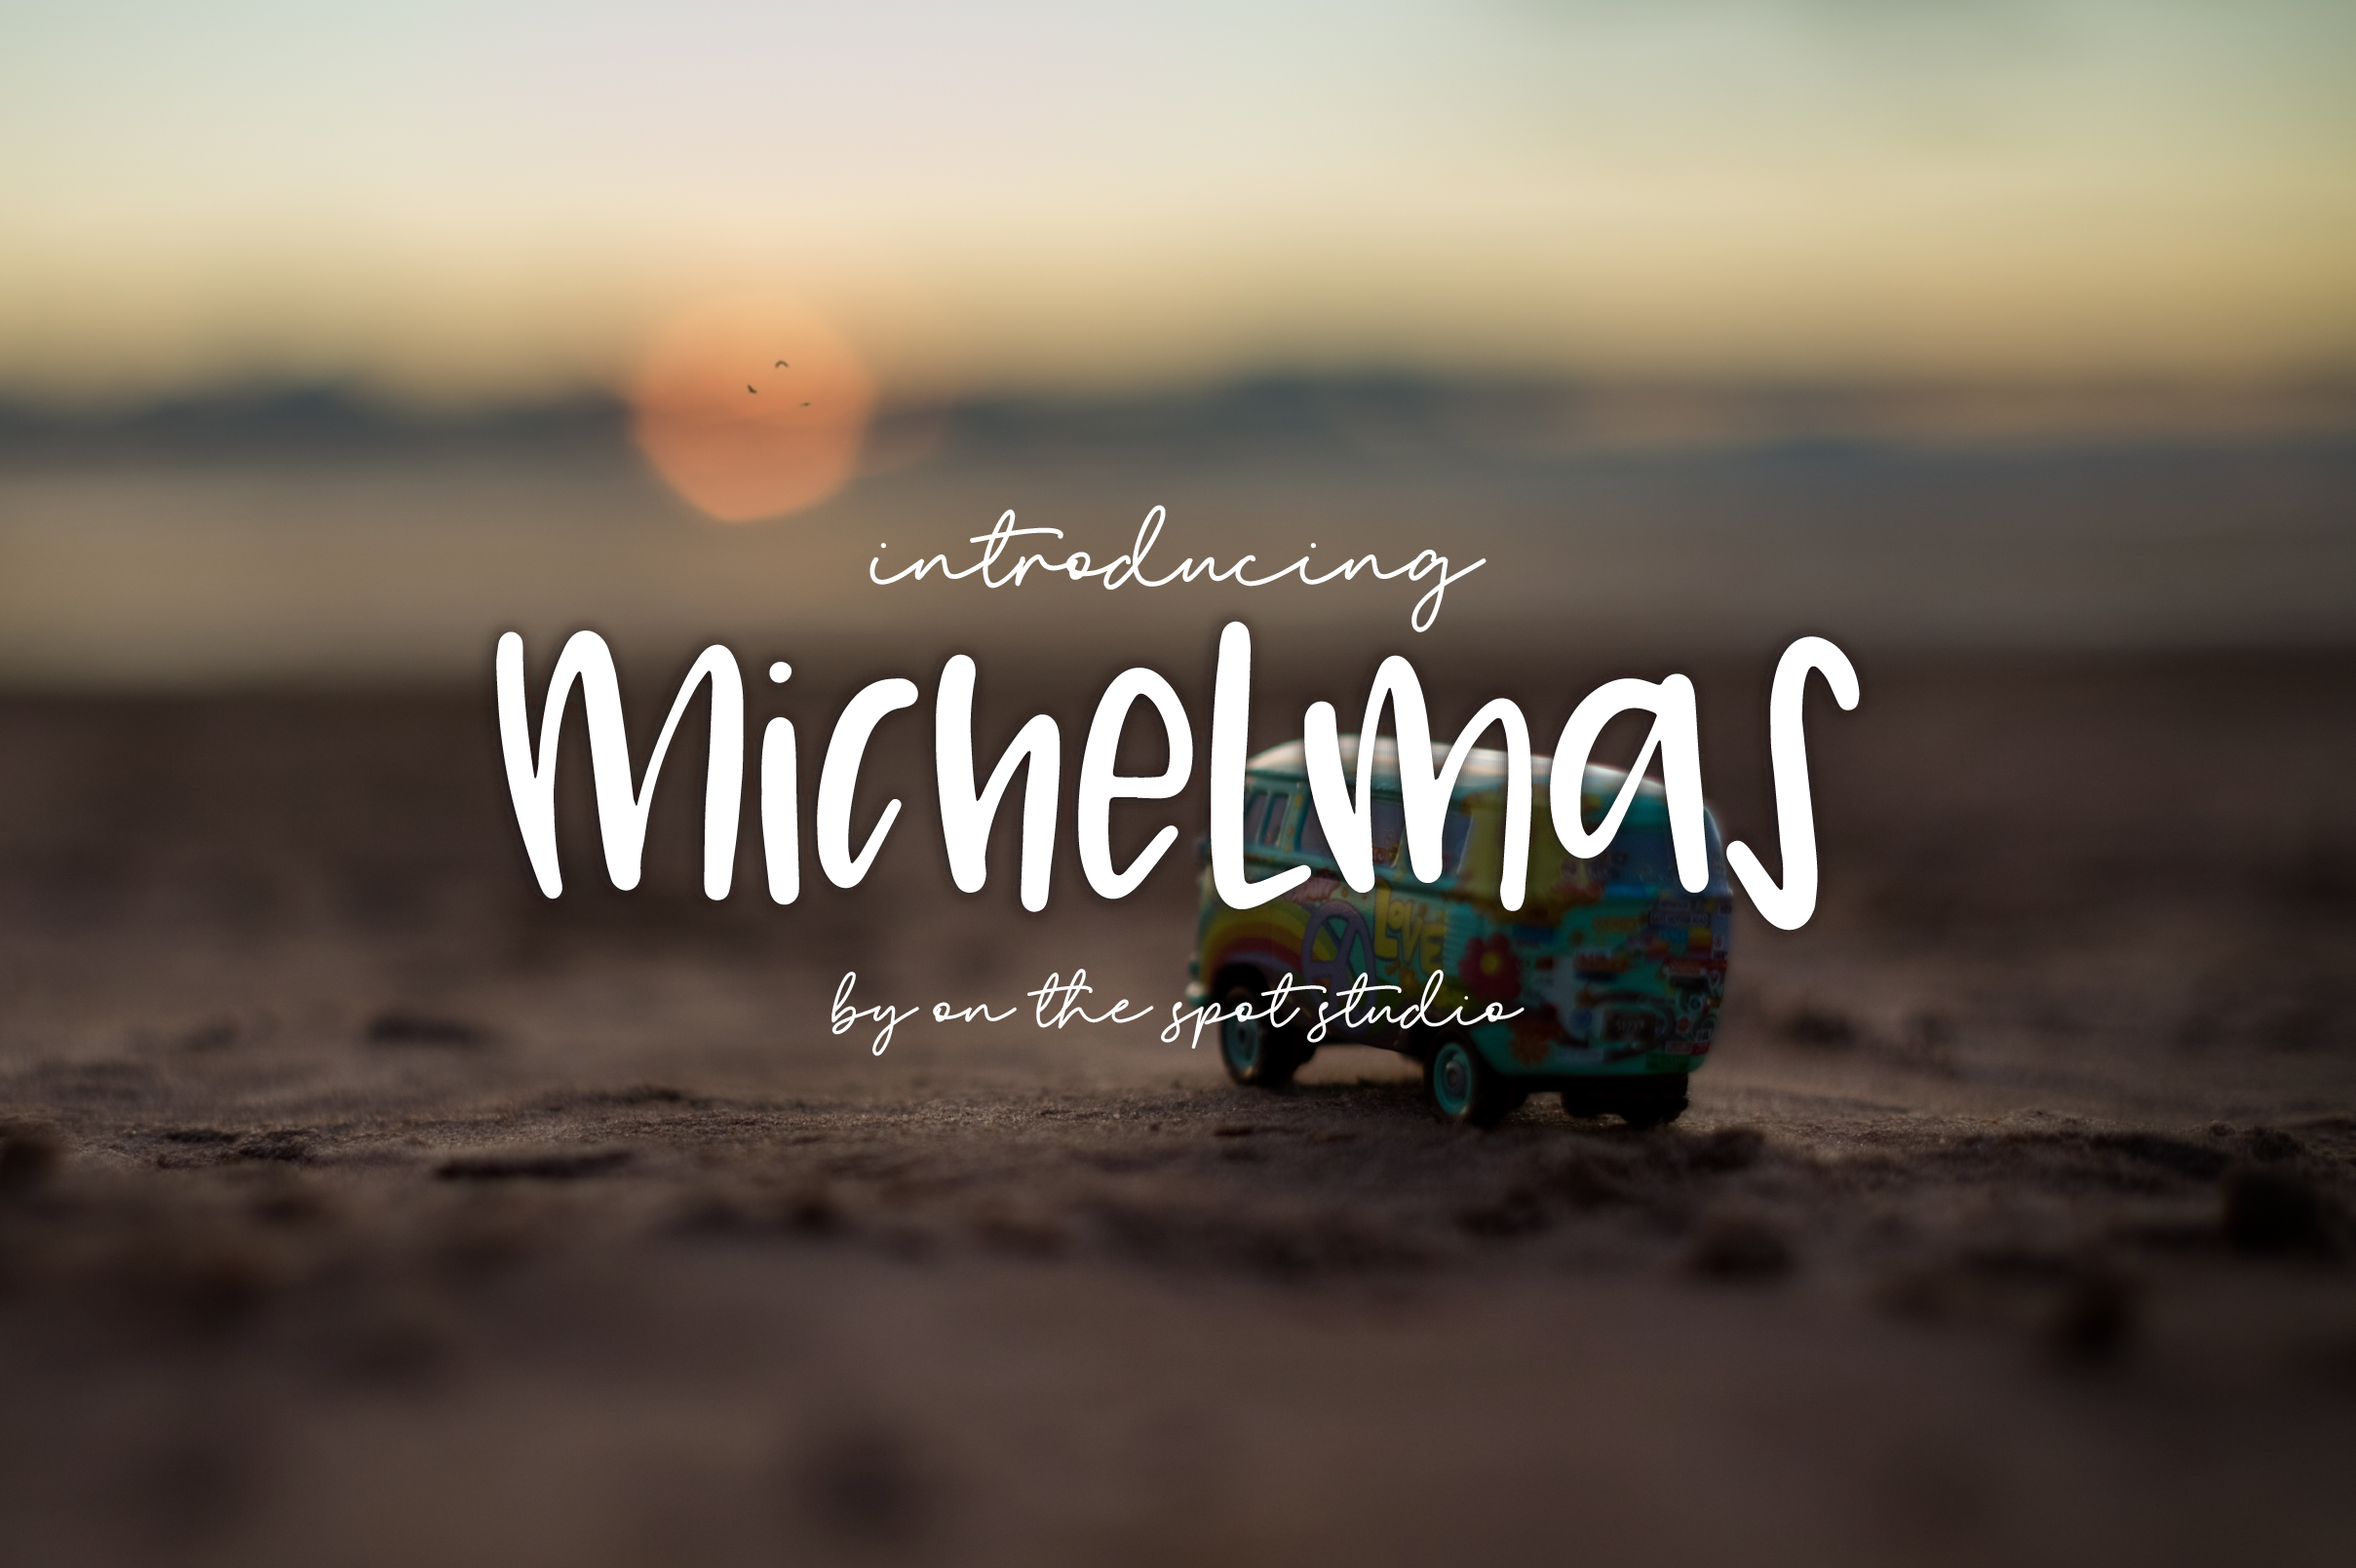 Mickelmas - A Quirky Print example image 1